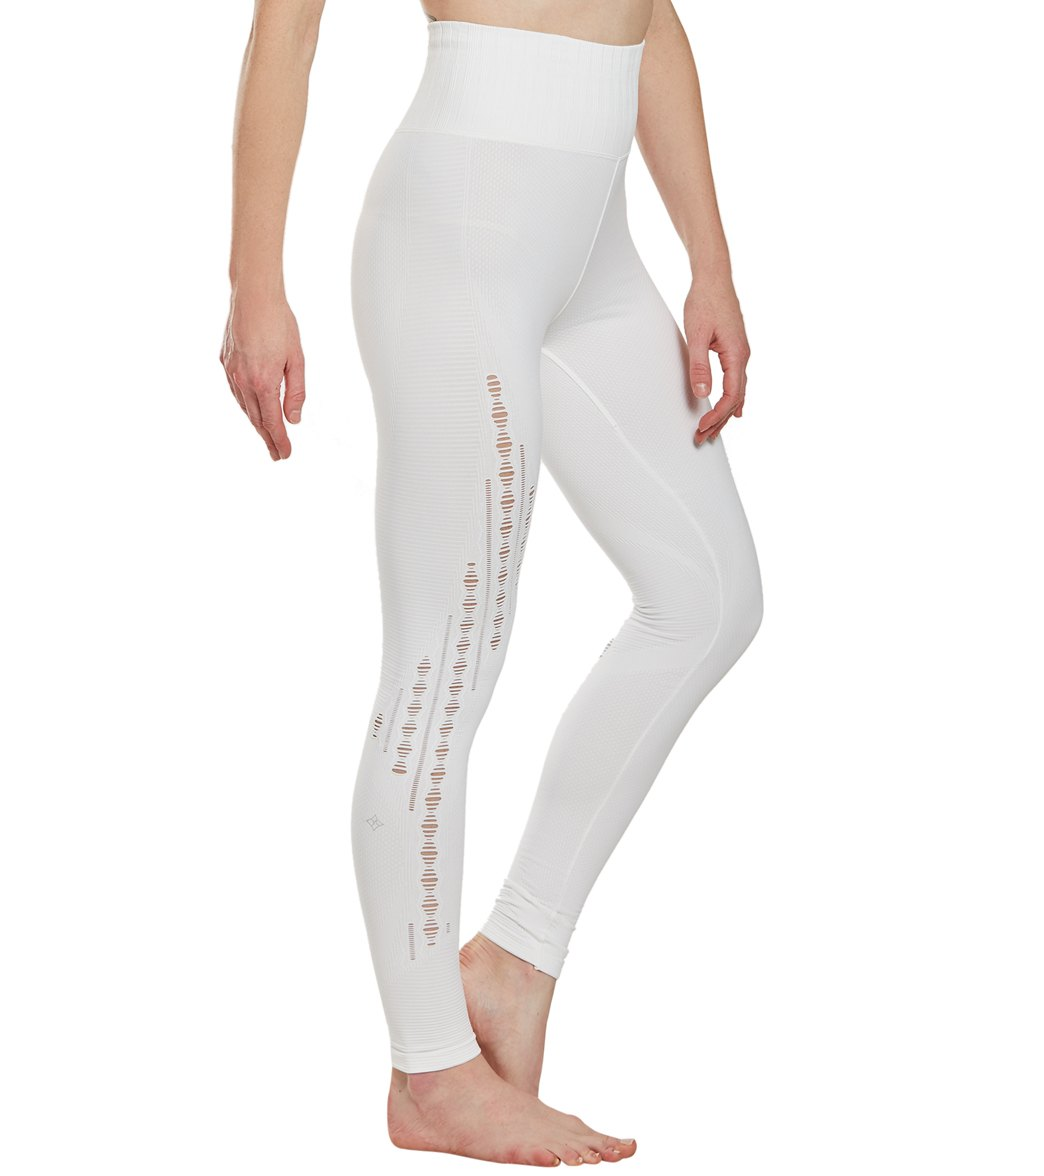 NUX Triple Threat Seamless Yoga Leggings - White Spandex